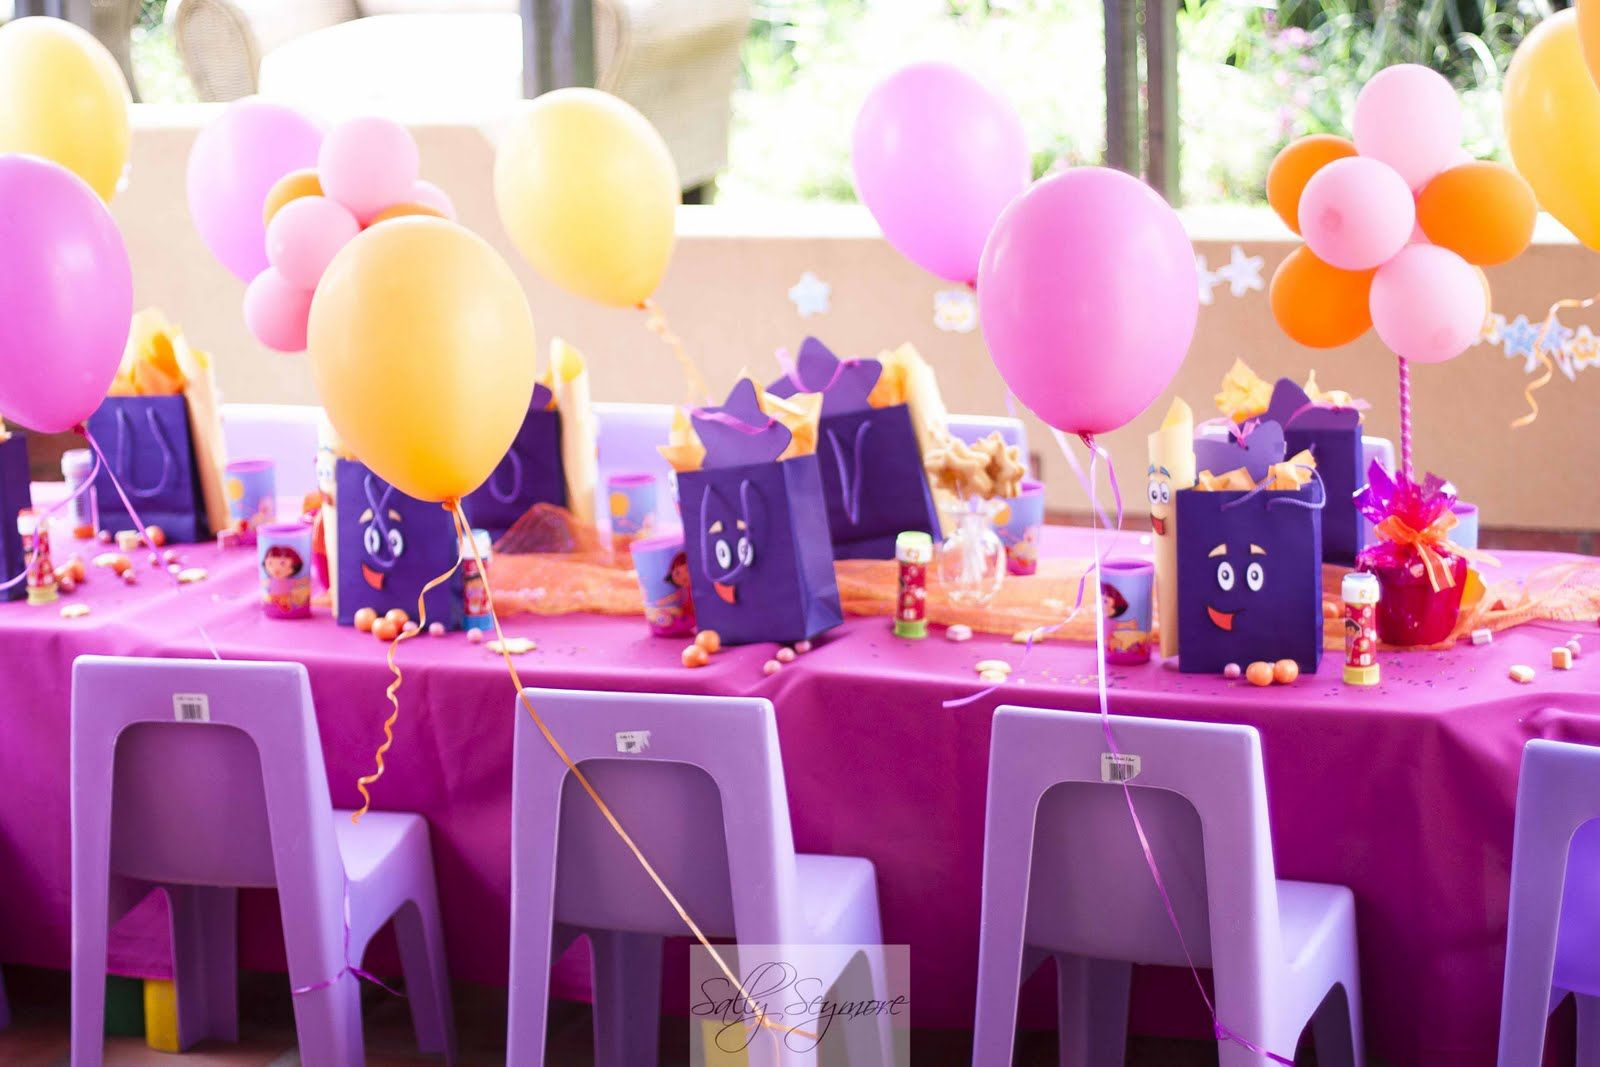 montreals year long birthday party - HD 1200×800